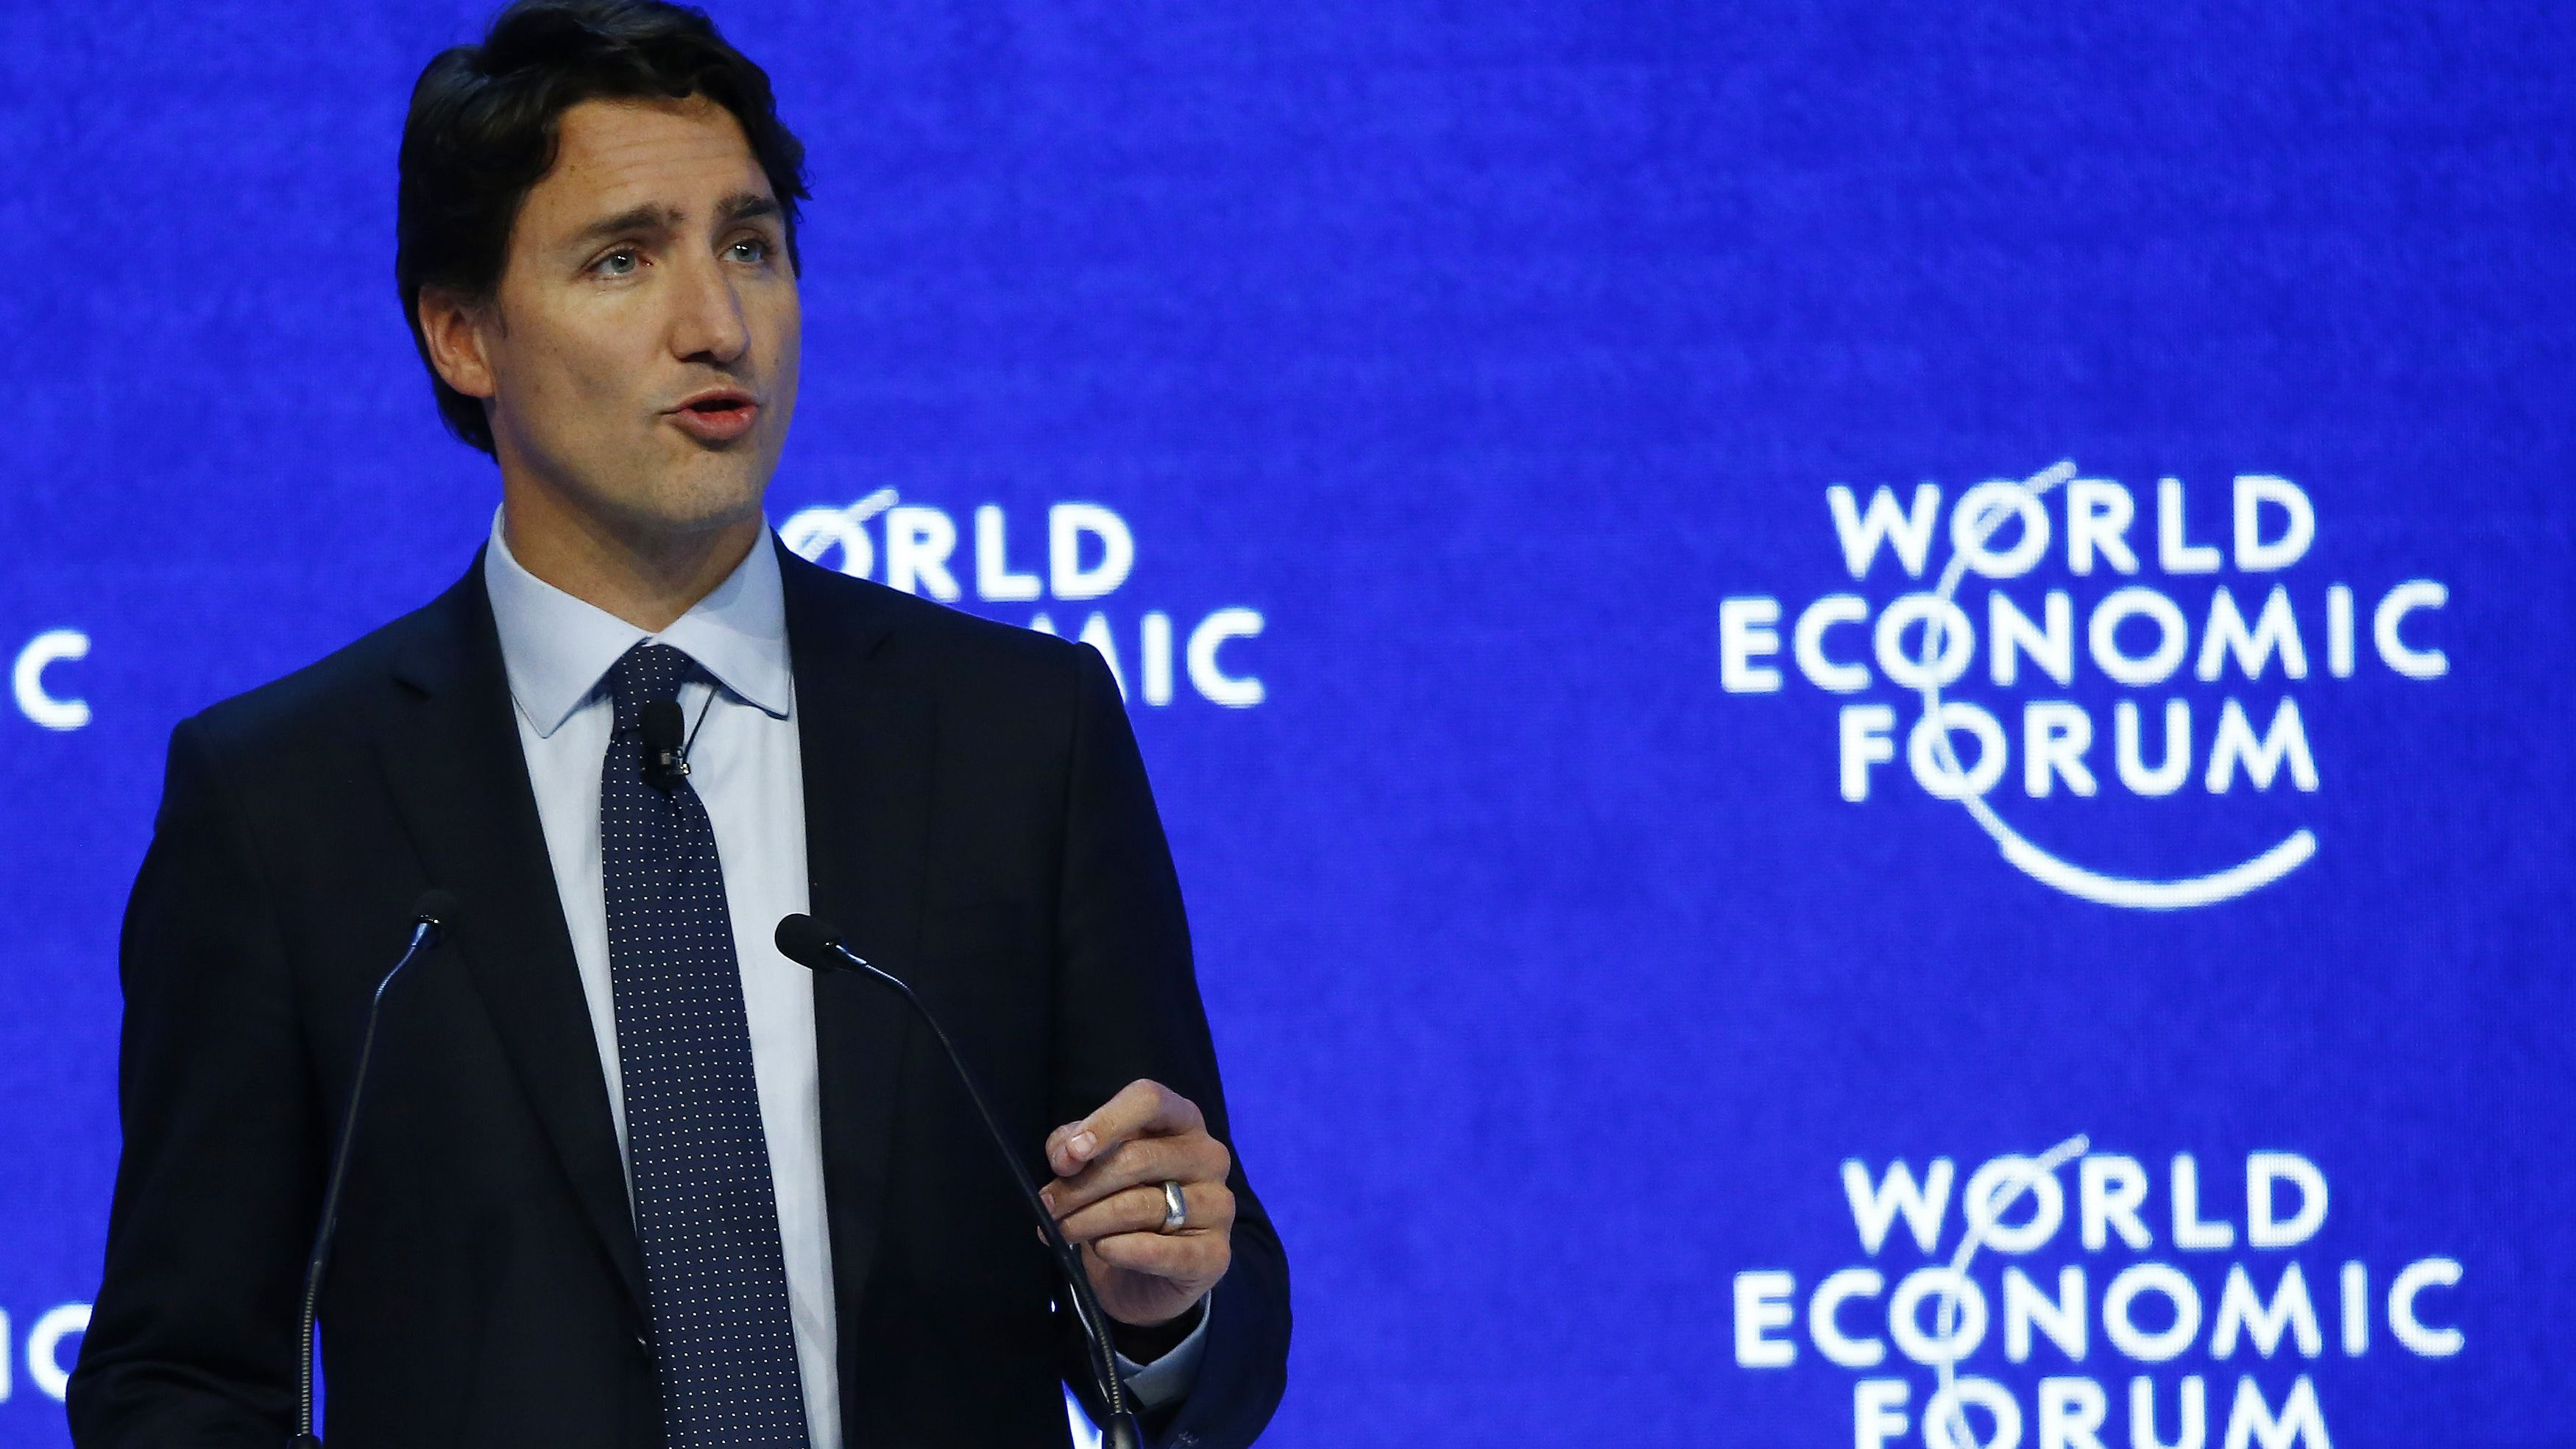 """Justin Trudeau, Prime Minister of Canada attends the session """"The Canadian Opportunity"""" during the Annual Meeting 2016 of the World Economic Forum (WEF) in Davos, Switzerland January 20, 2016. REUTERS/Ruben Sprich"""